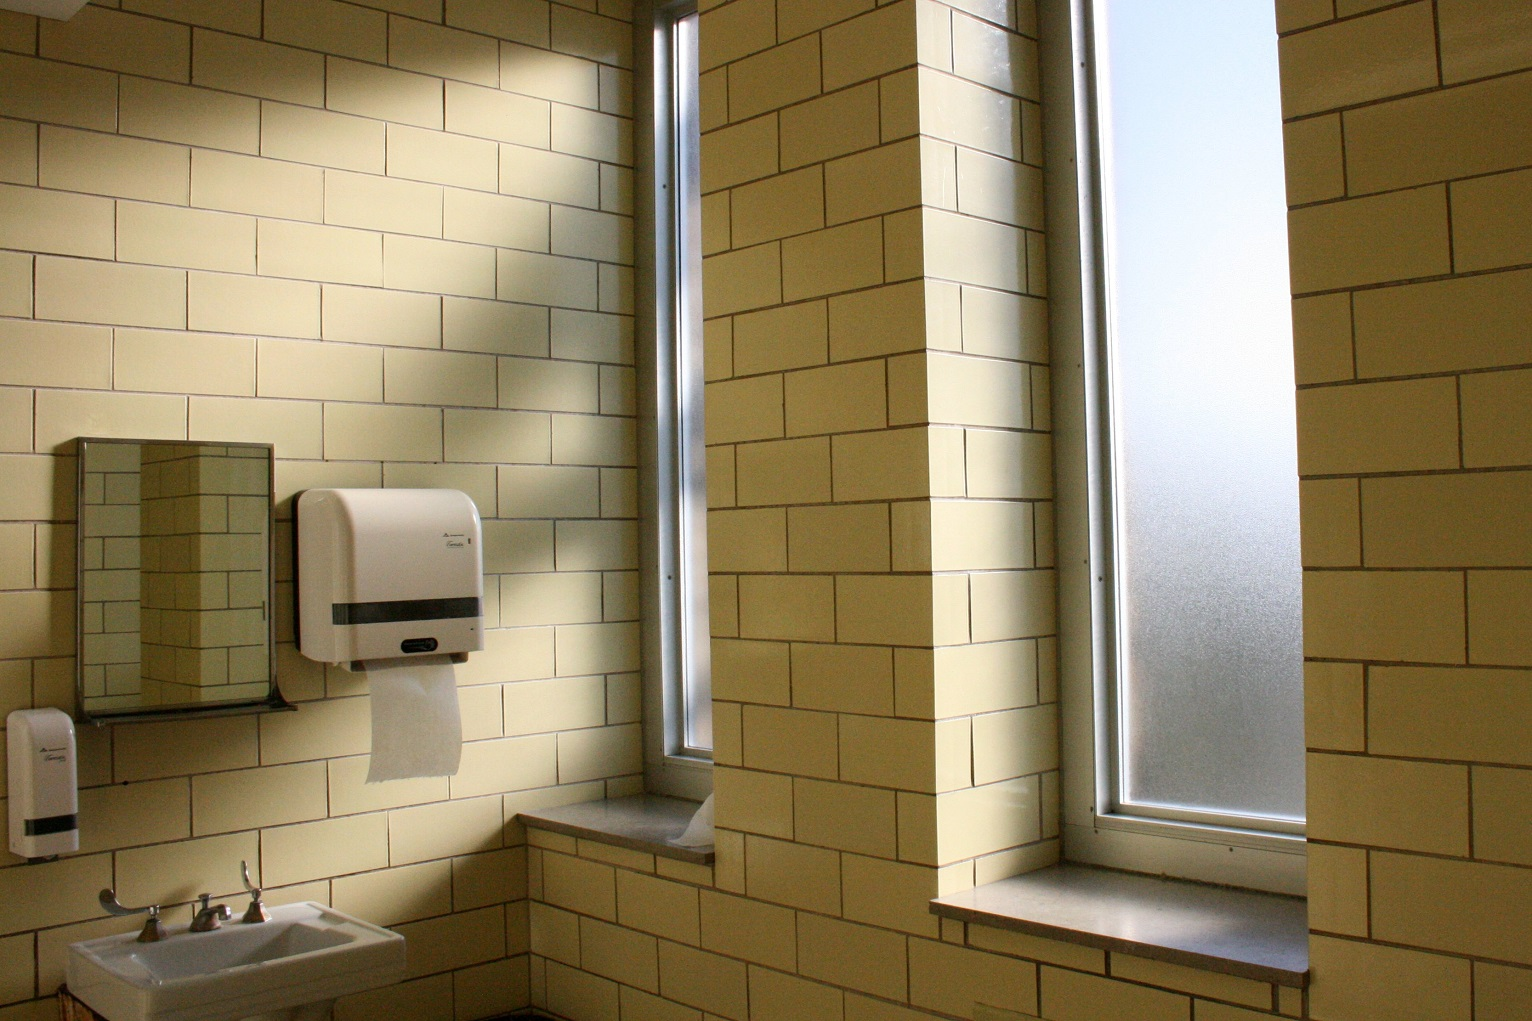 High School Bathroom minority and low-income students face their own school bathroom